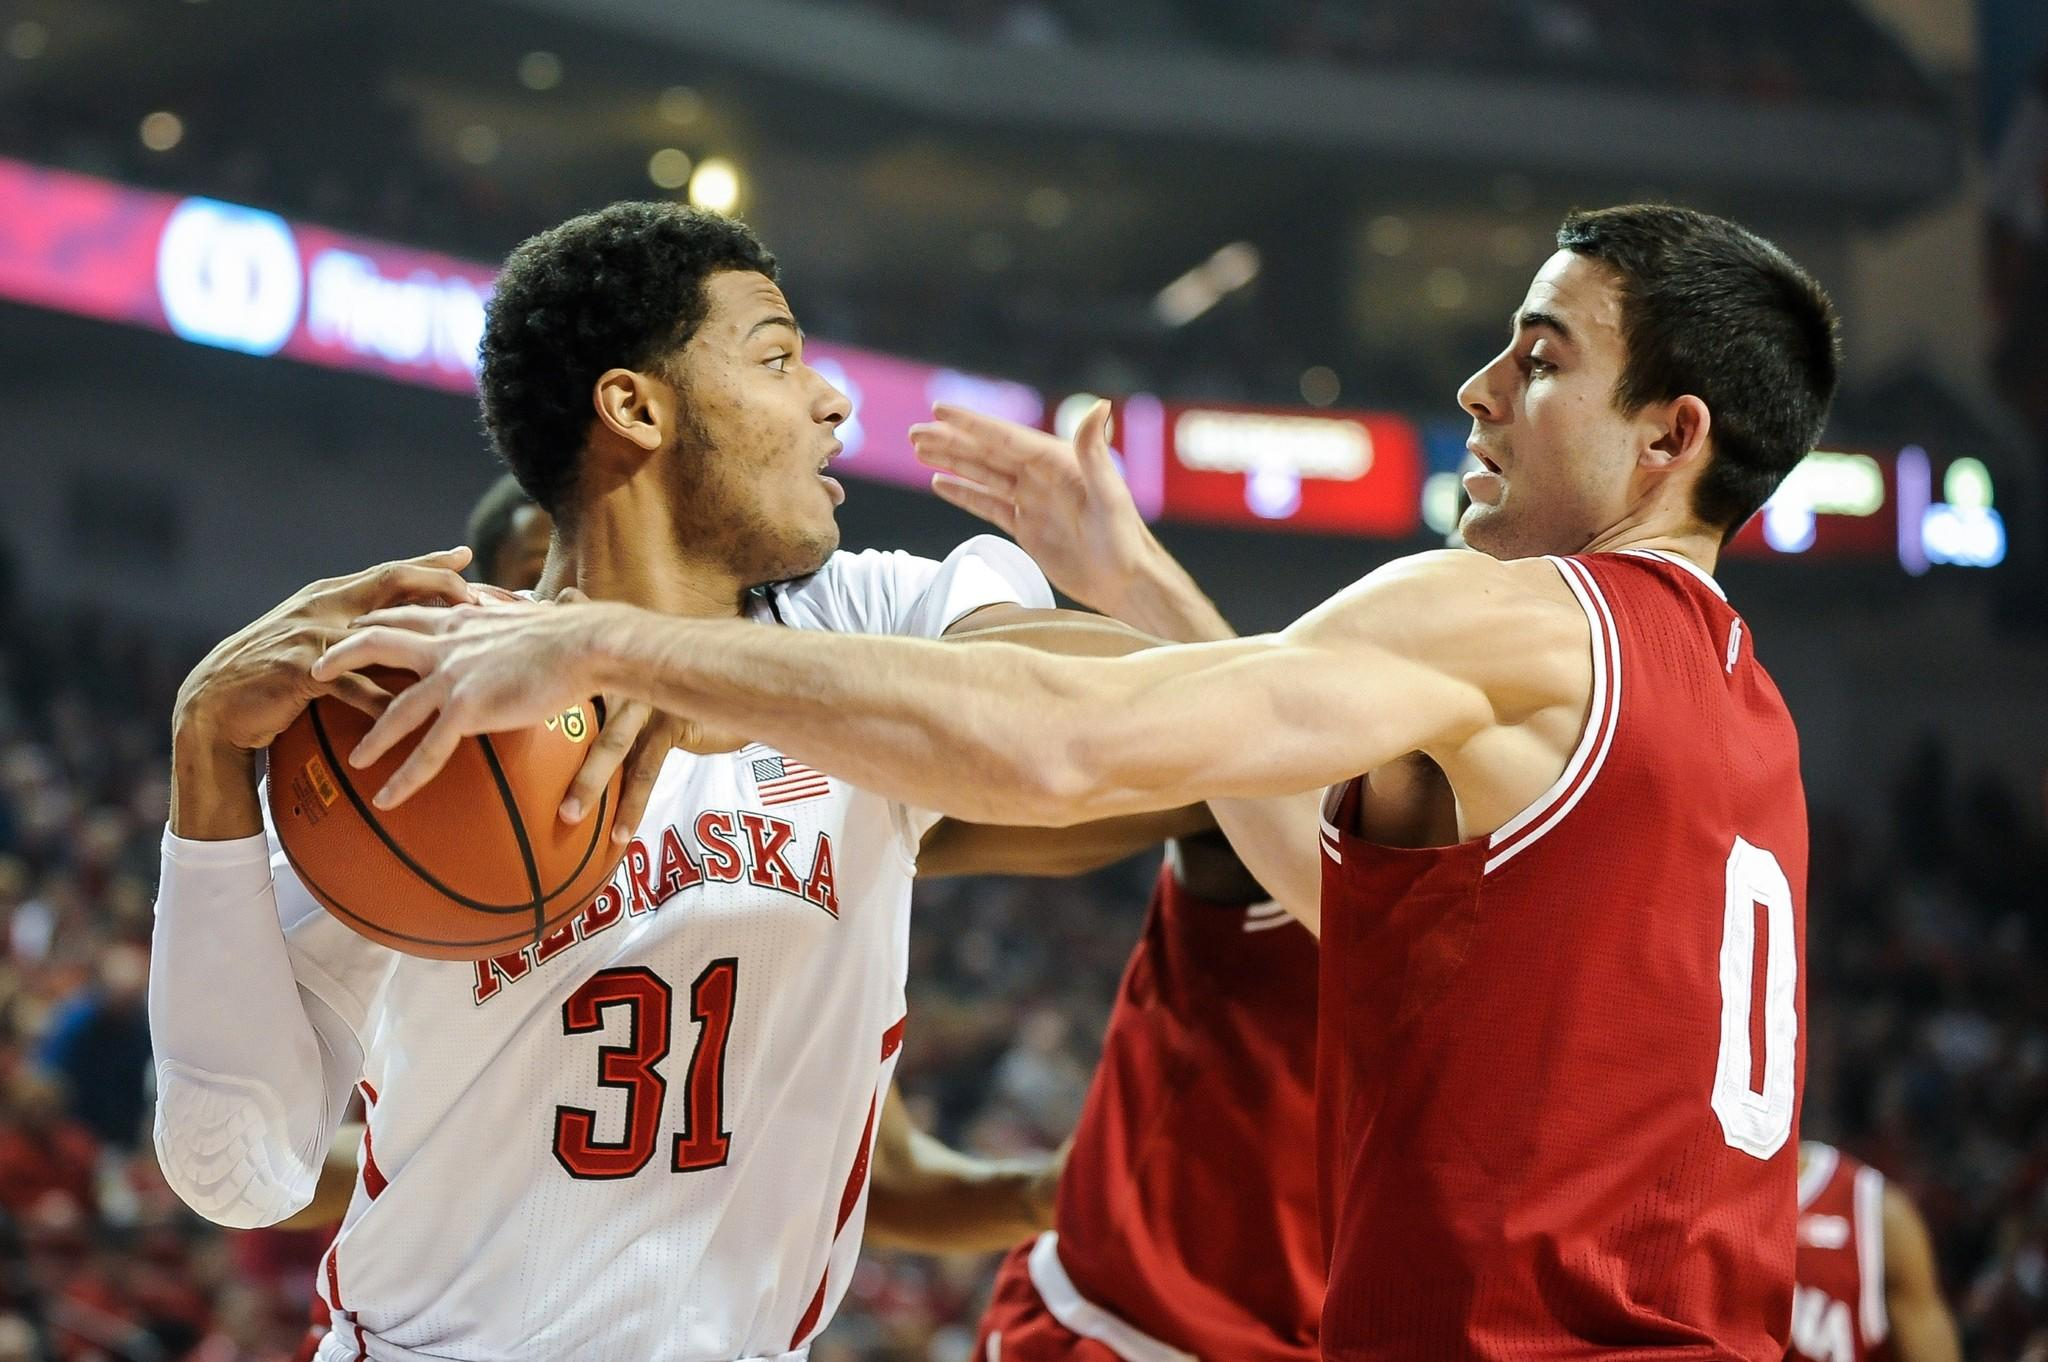 Nebraska's Shavon Shields is defended by Indiana's Will Sheehey.